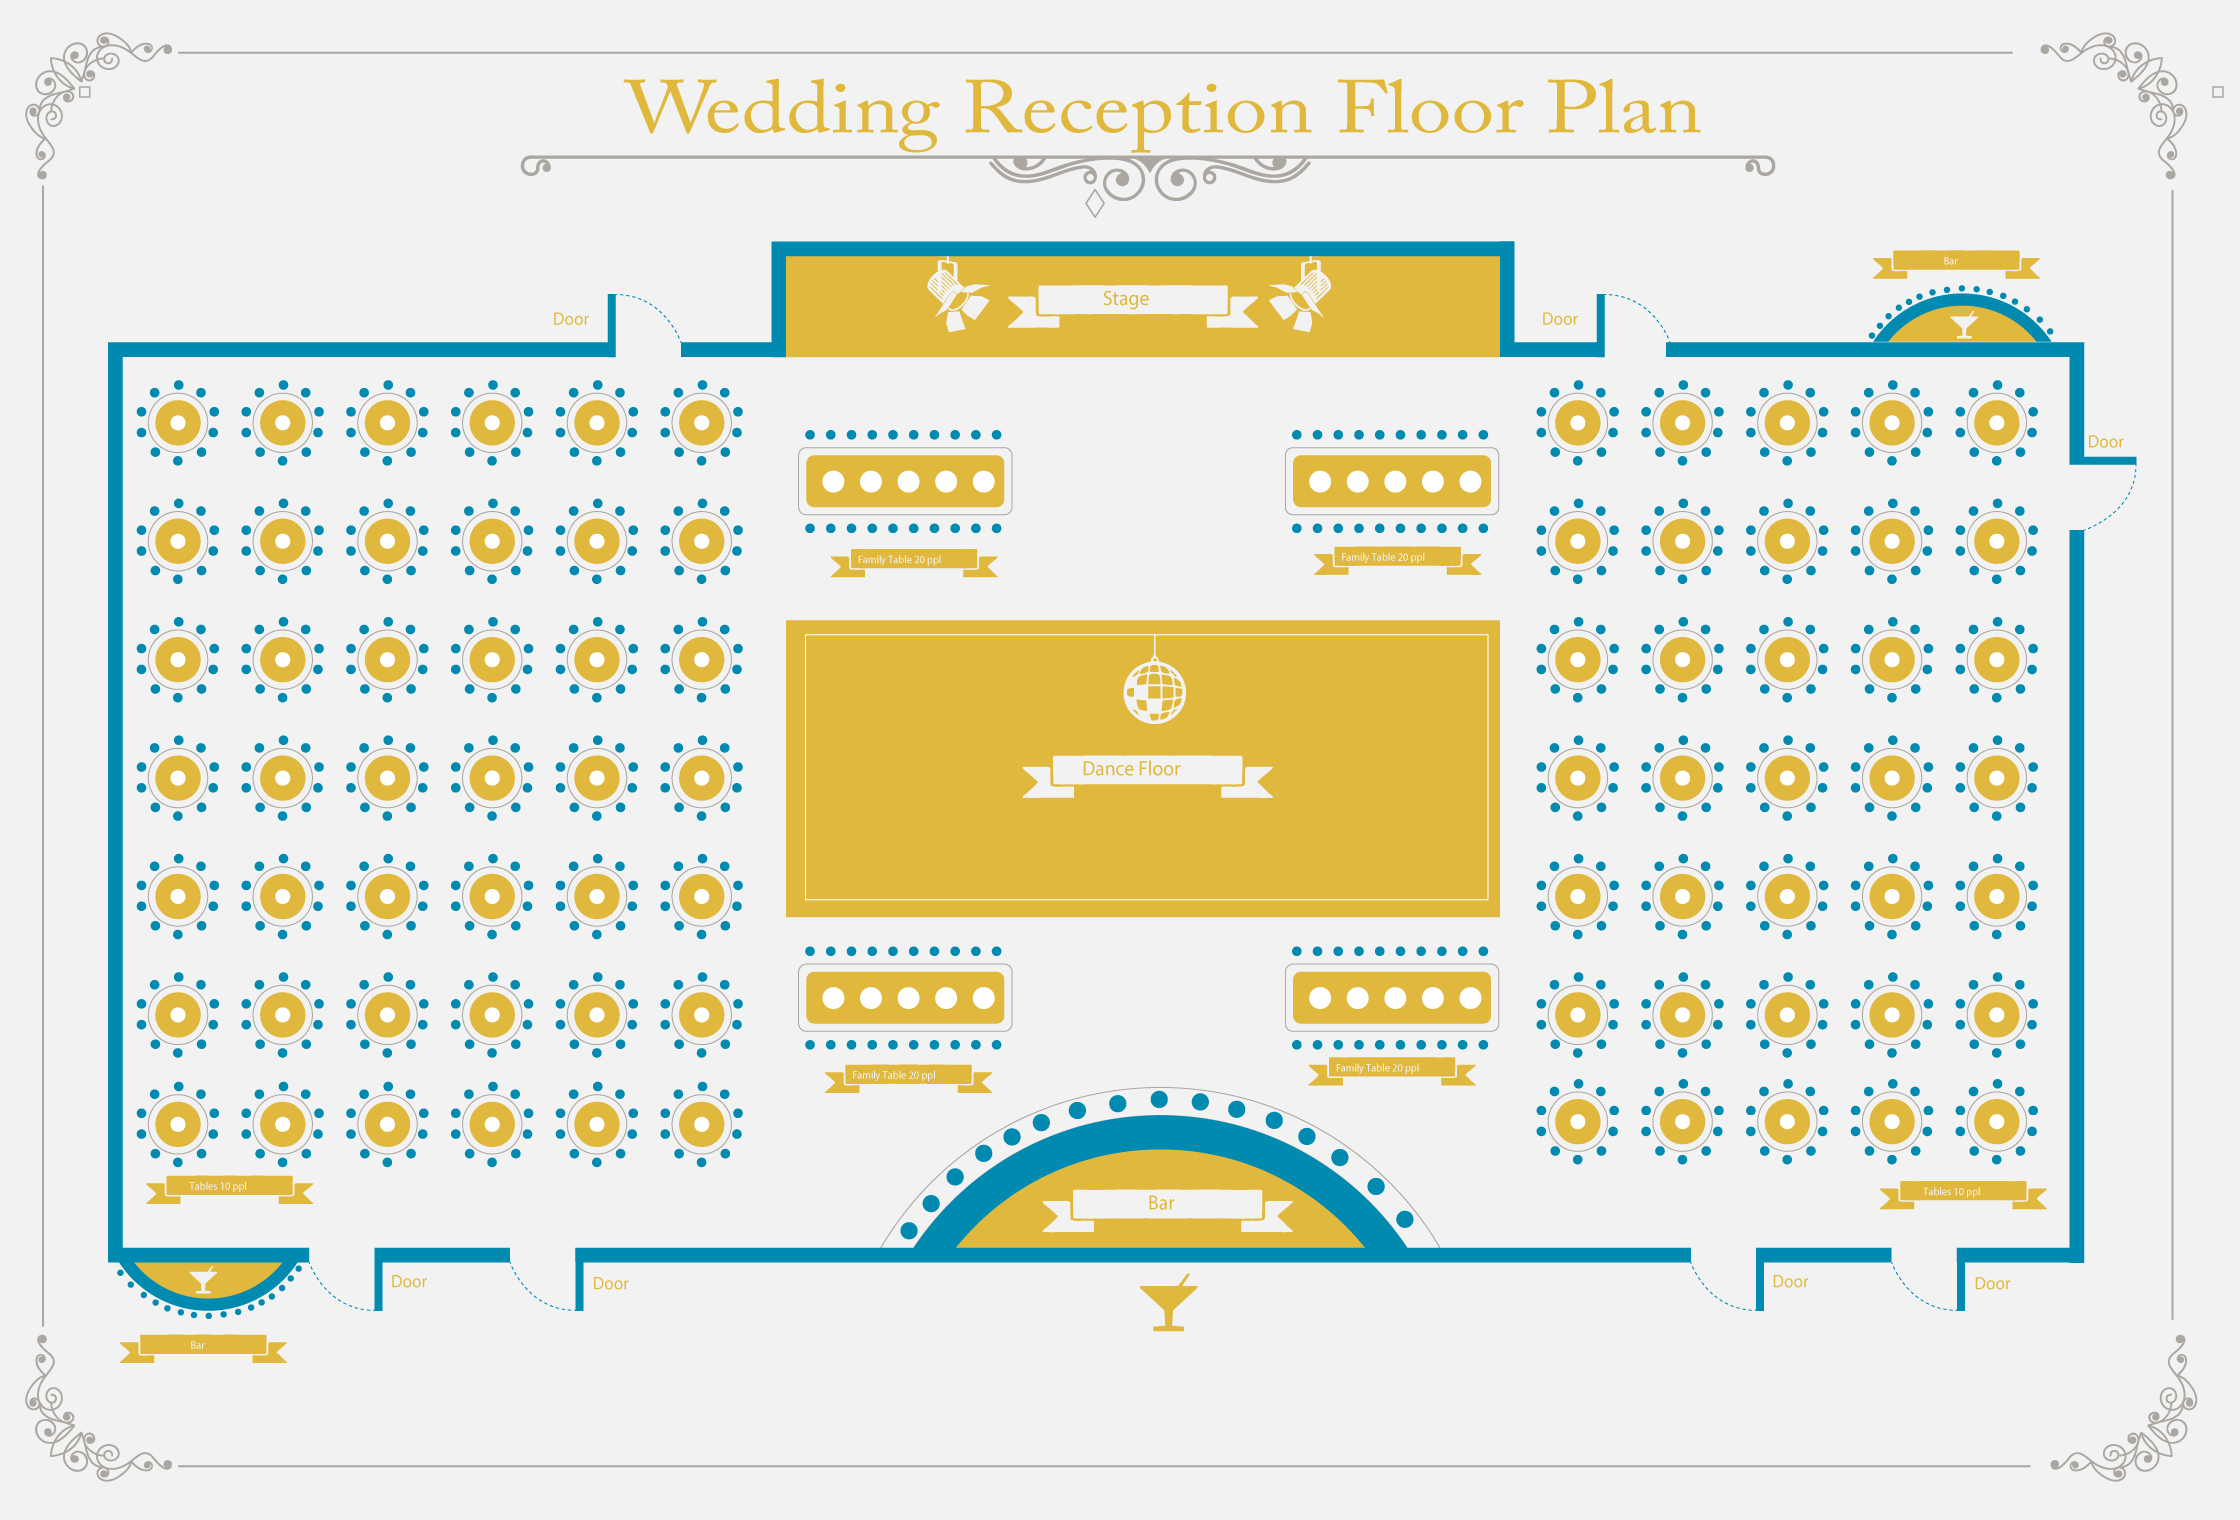 Weeding-Reception-Floor-Plan